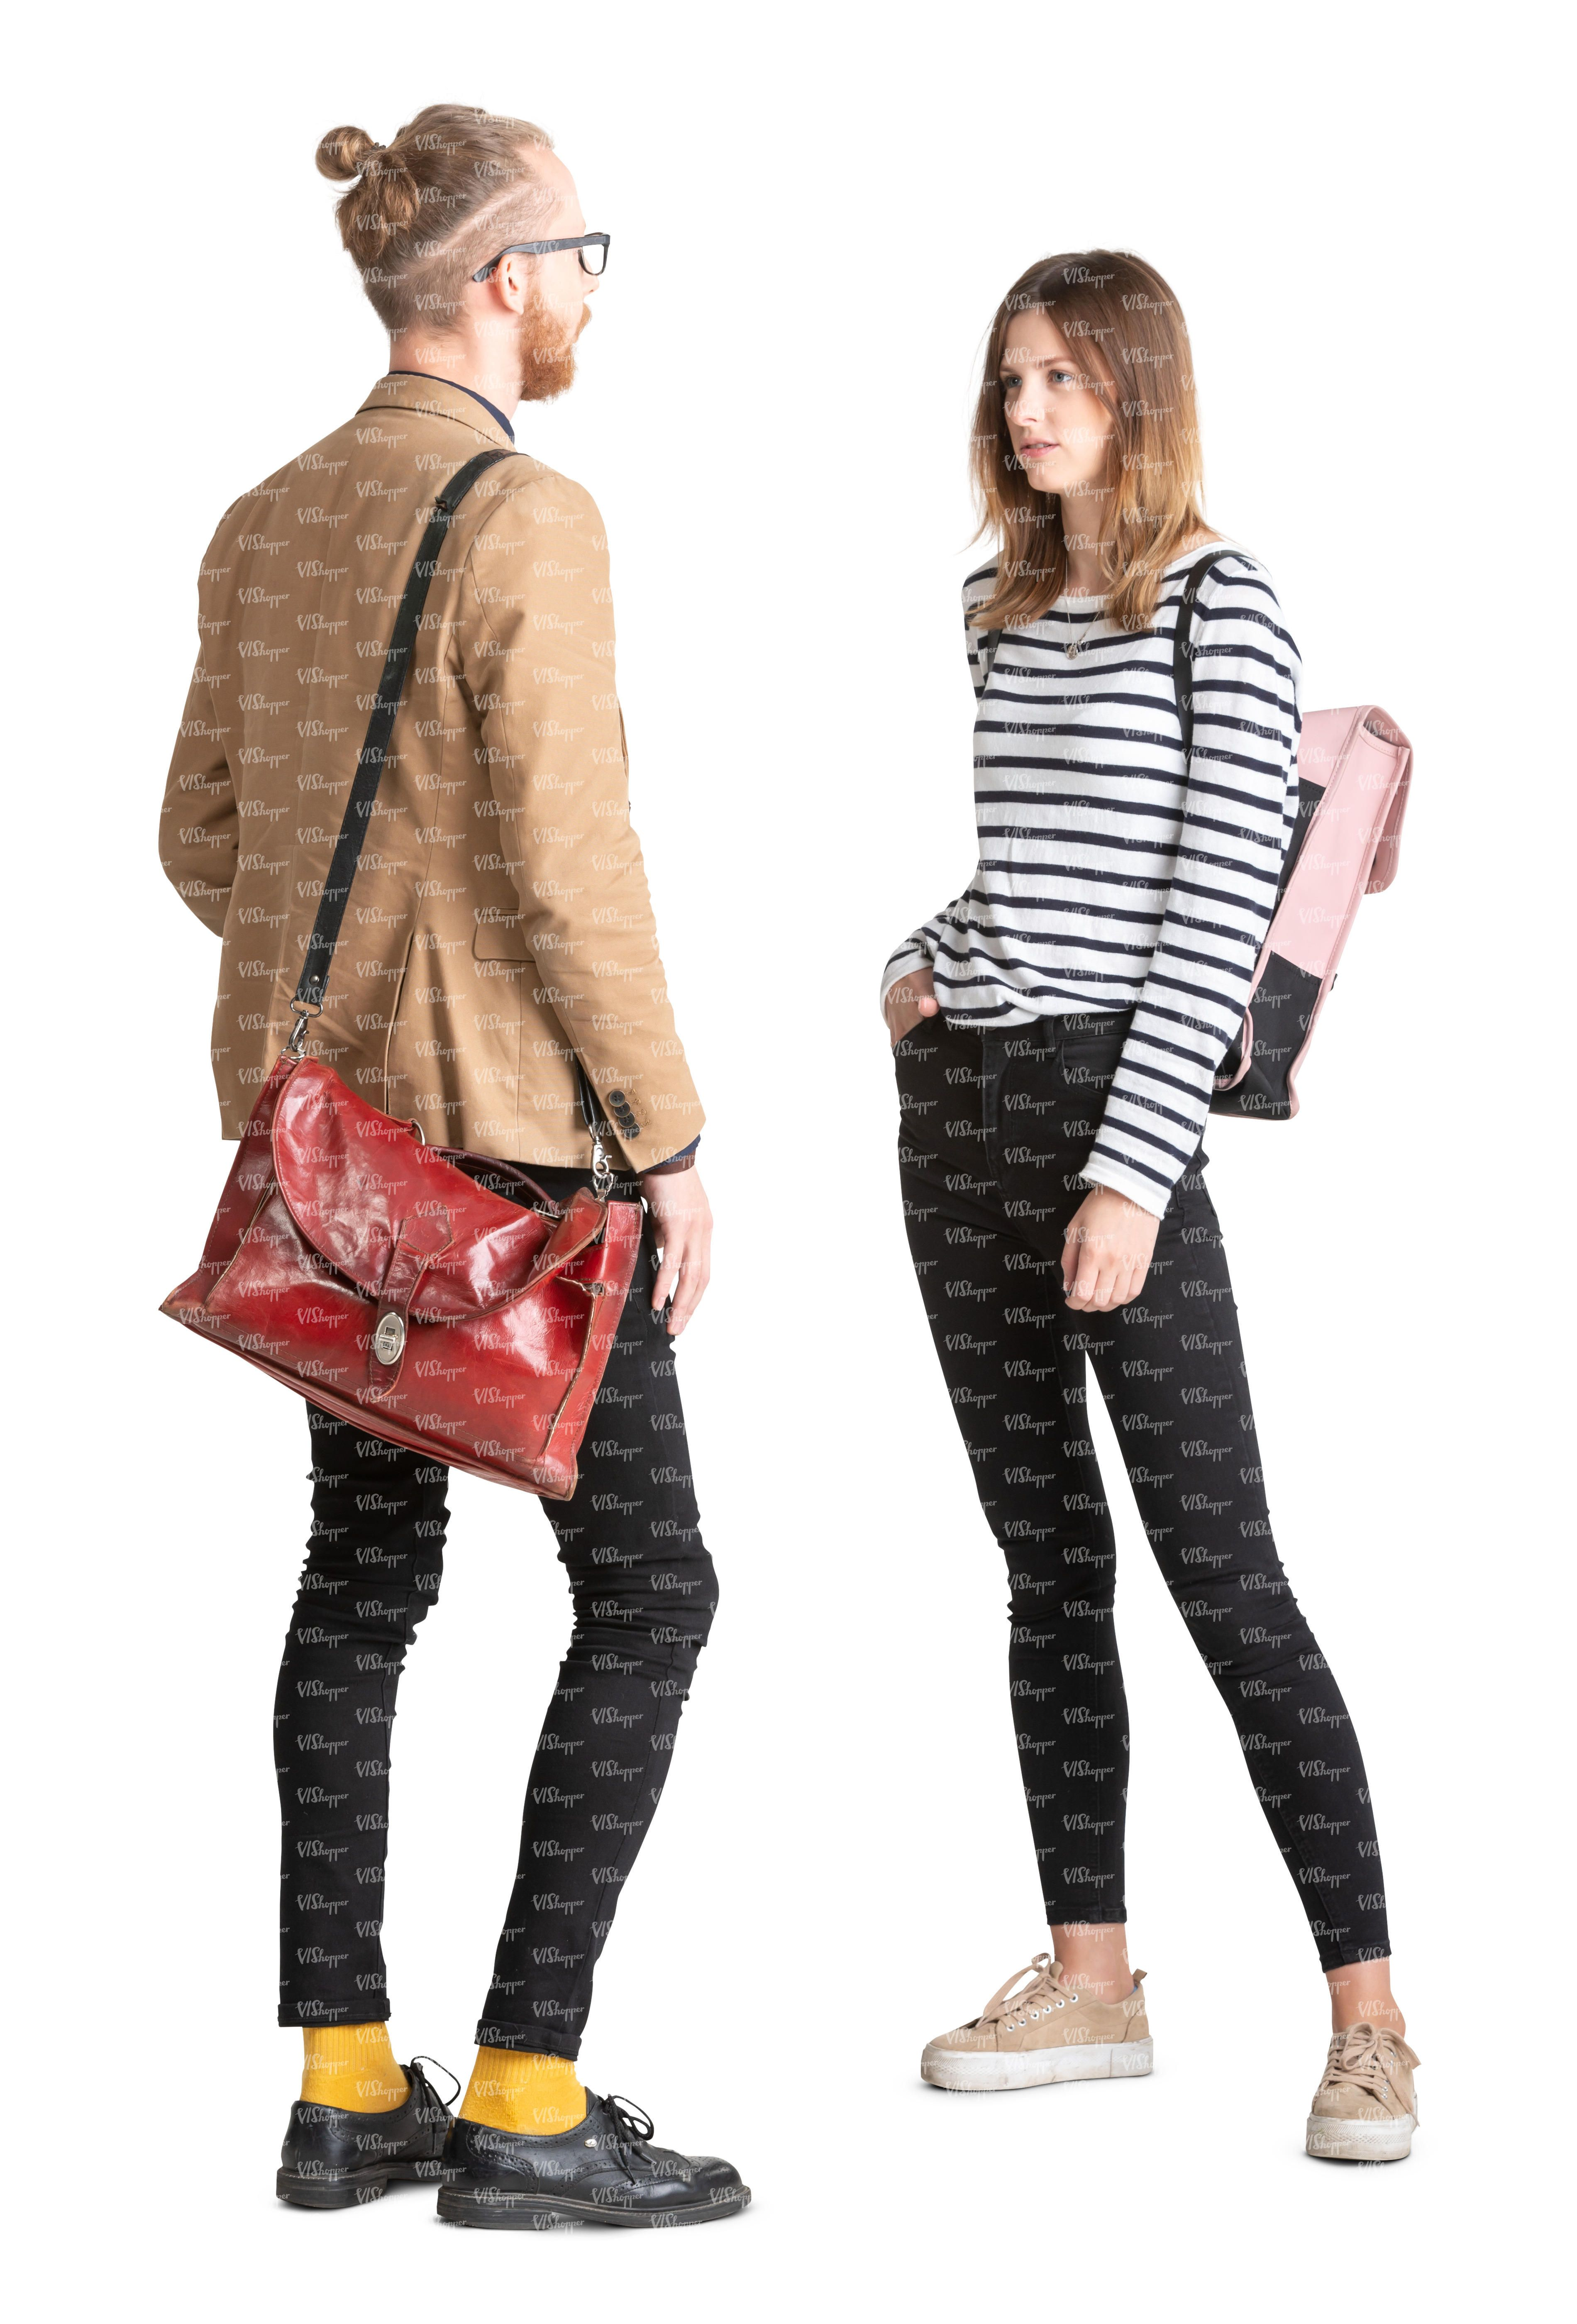 two cutout young people standing and talking